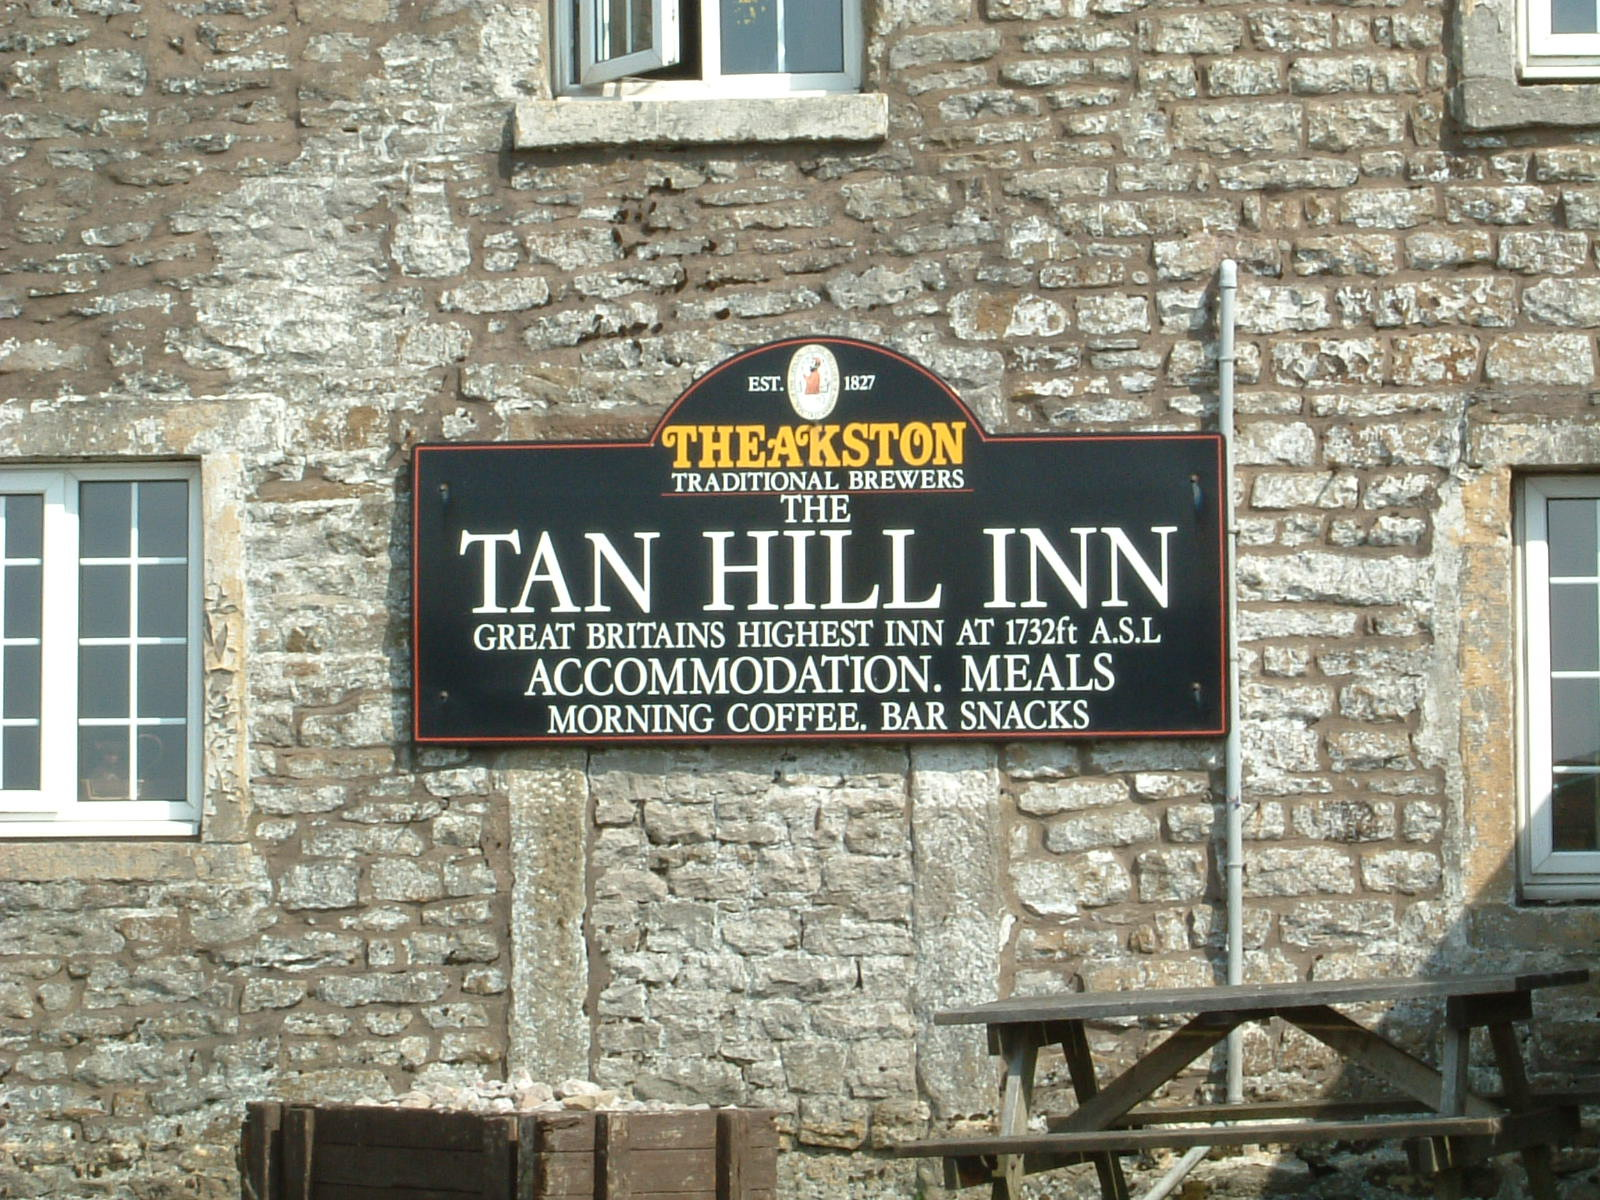 A sign proclaiming the Tan Hill Inn to be 'Great Britain's Highest Inn'